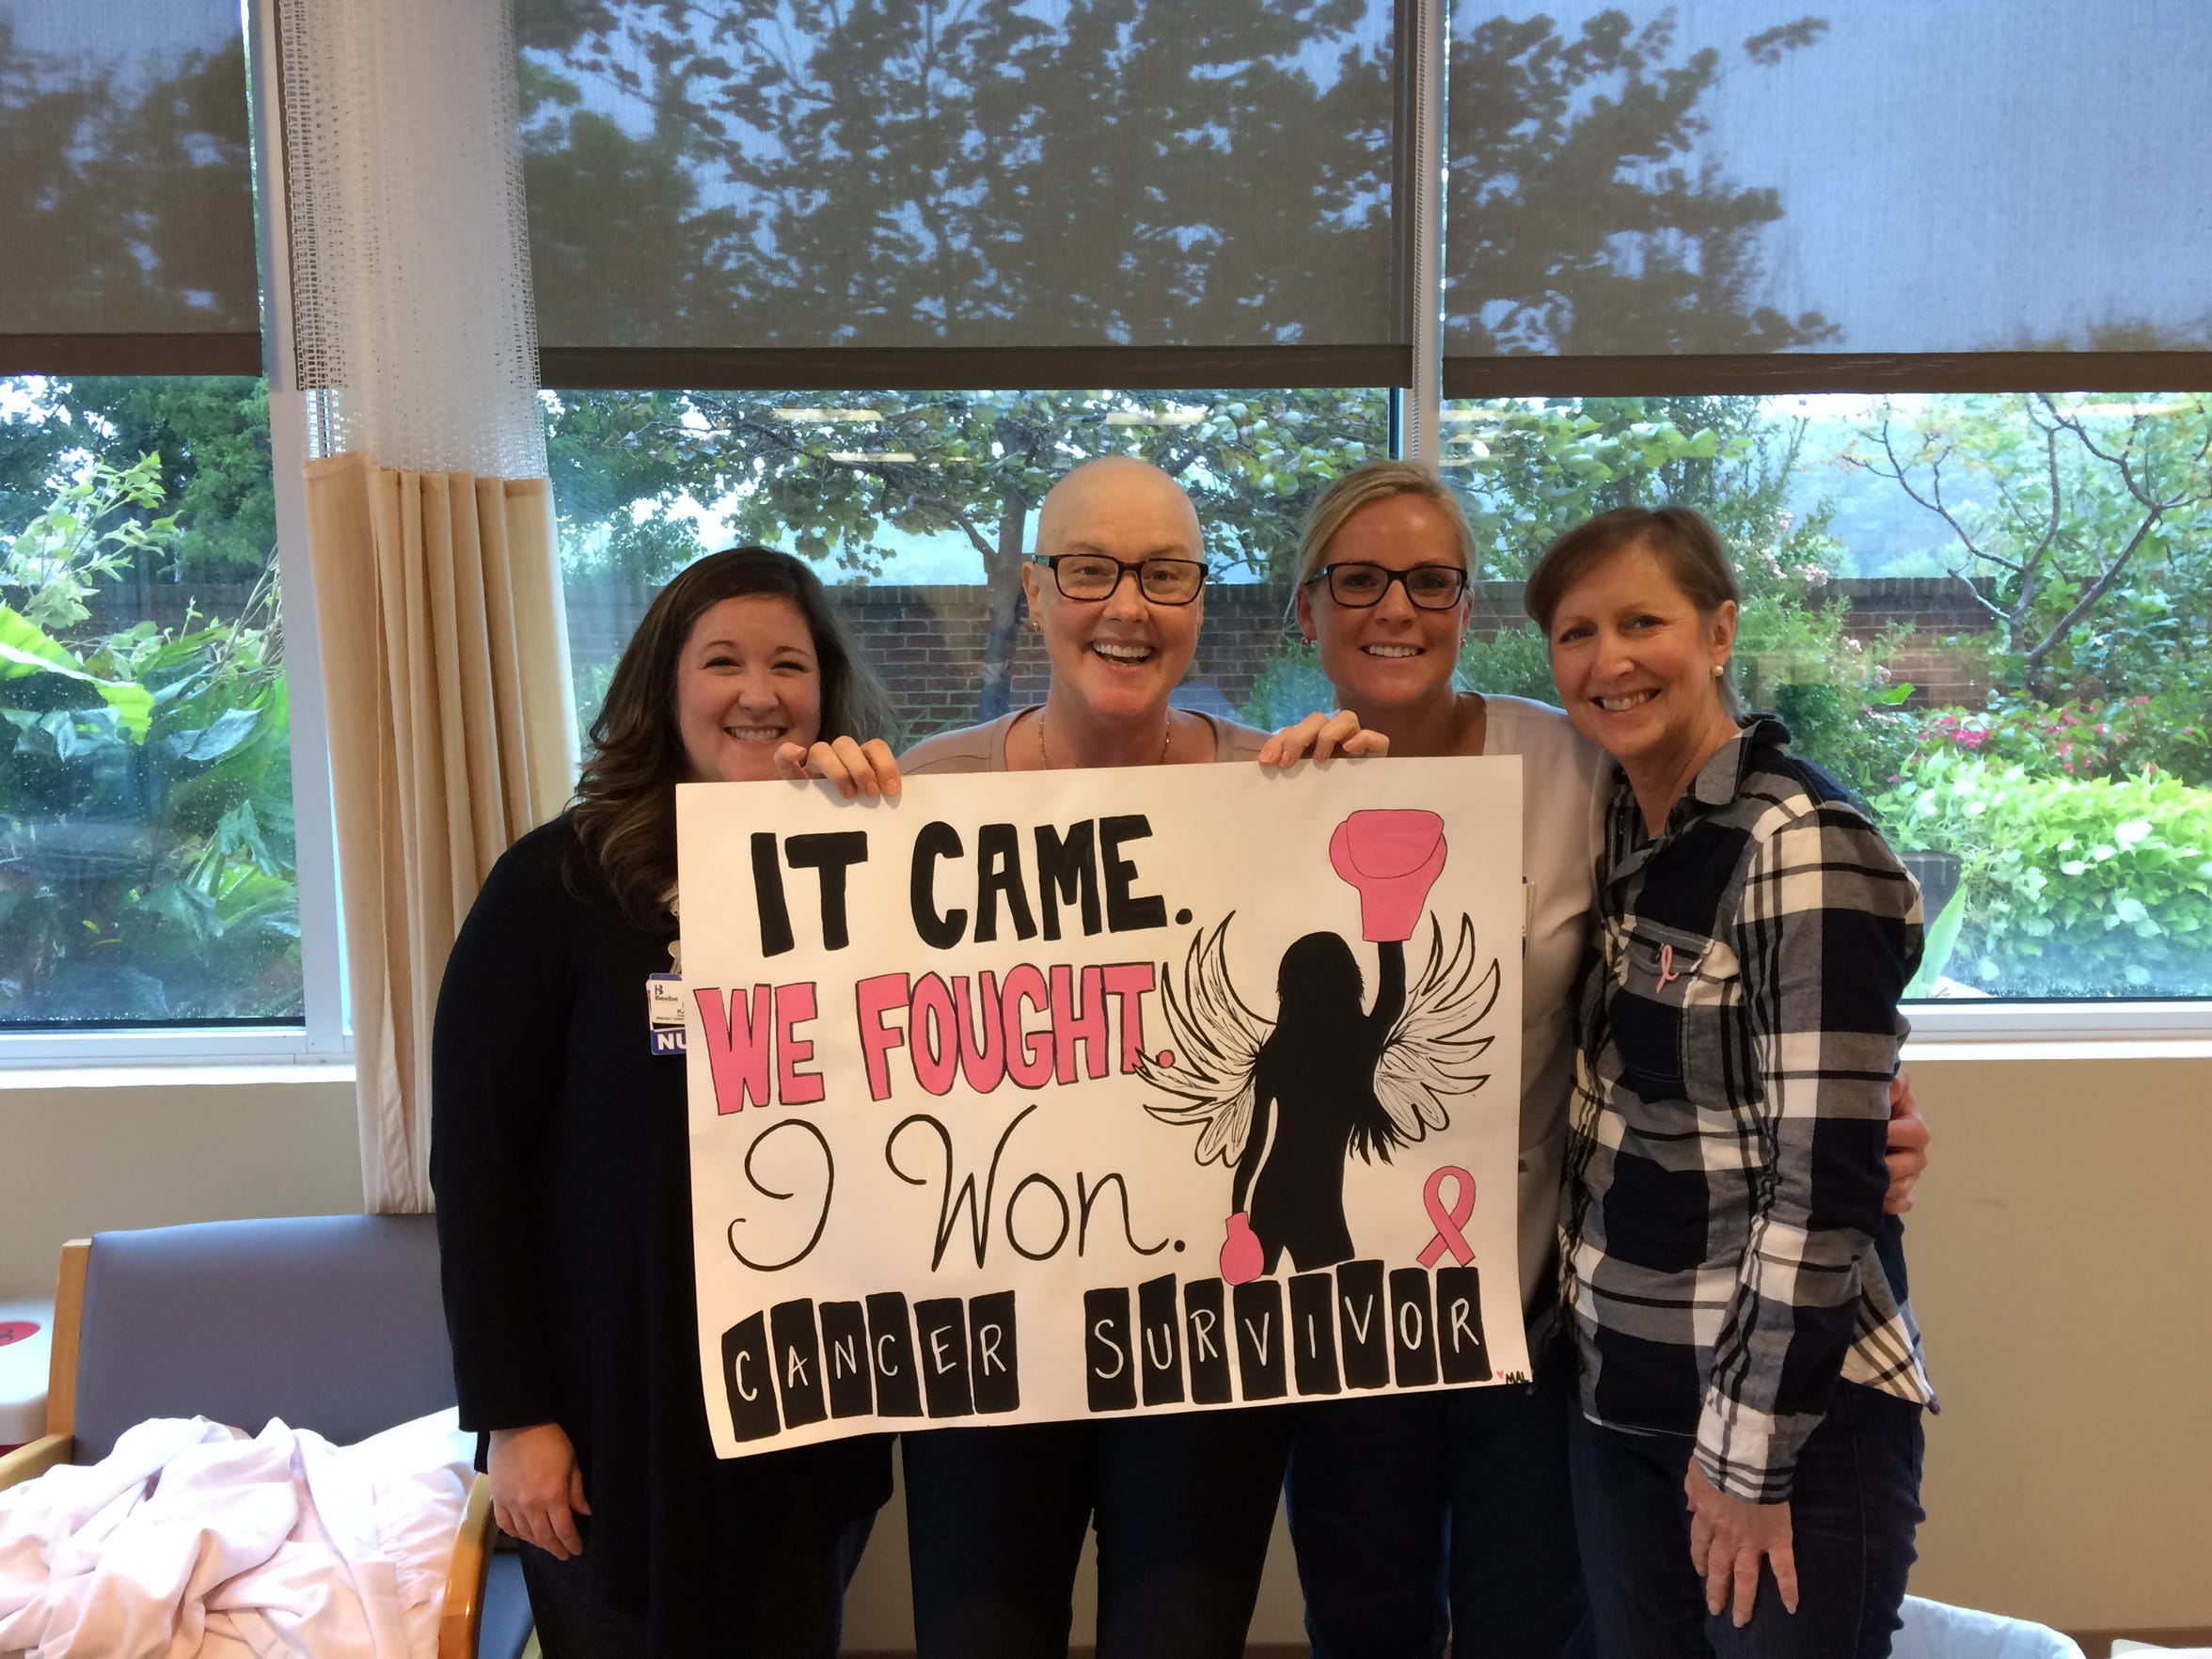 Lisa Welling poses for a photo on her final chemo session for breast cancer.